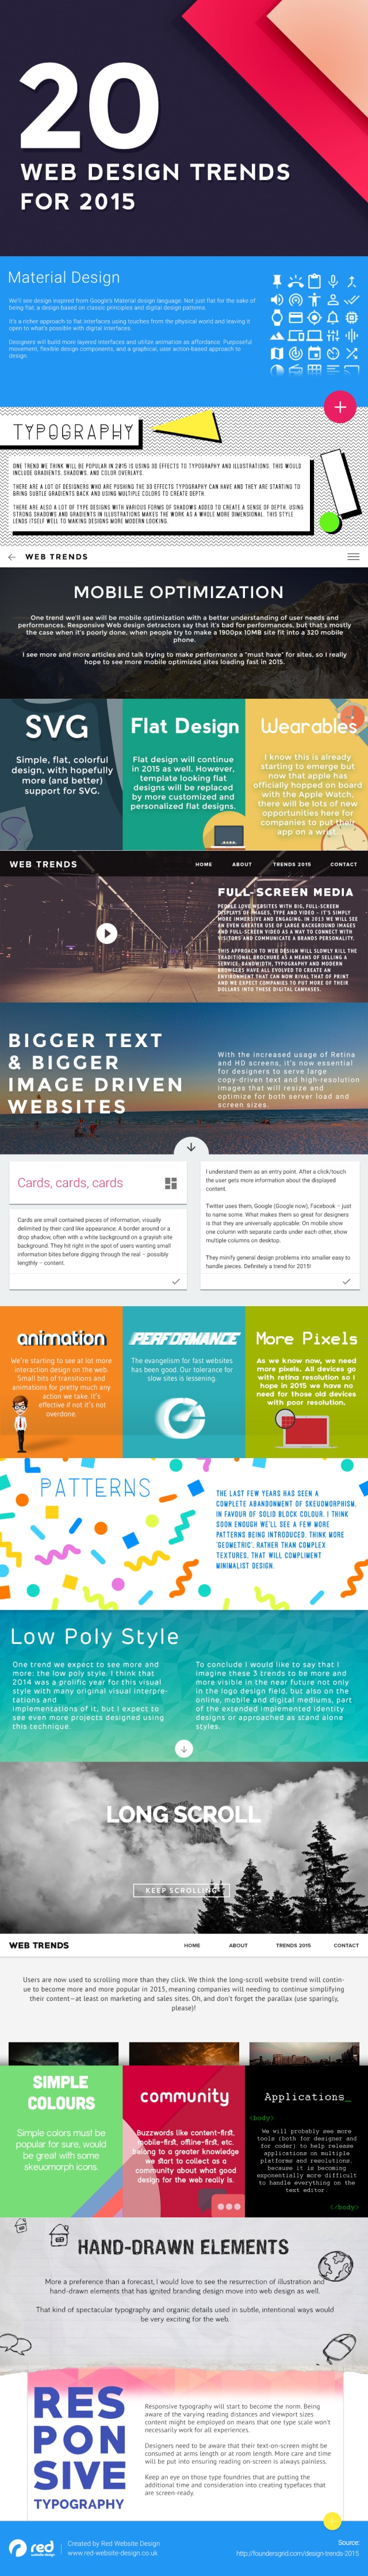 20-web-design-trends-2015